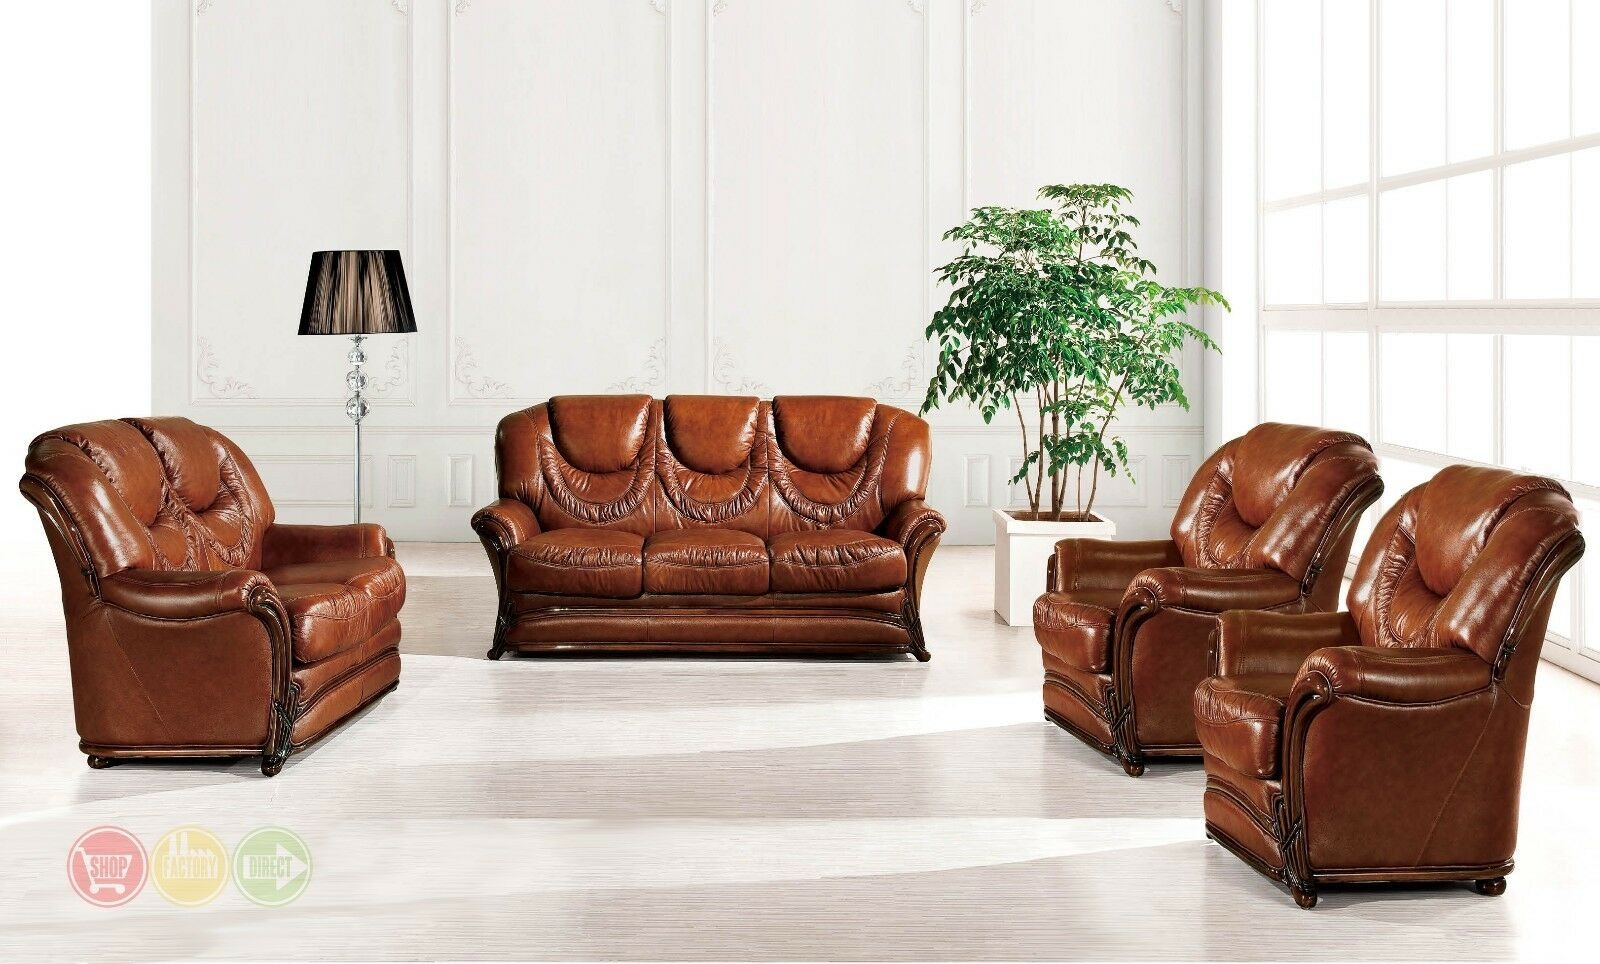 Bella Italian Leather Sleeper Sofa Loveseat 2 Chairs 4pc Set Carved Wood  Accents